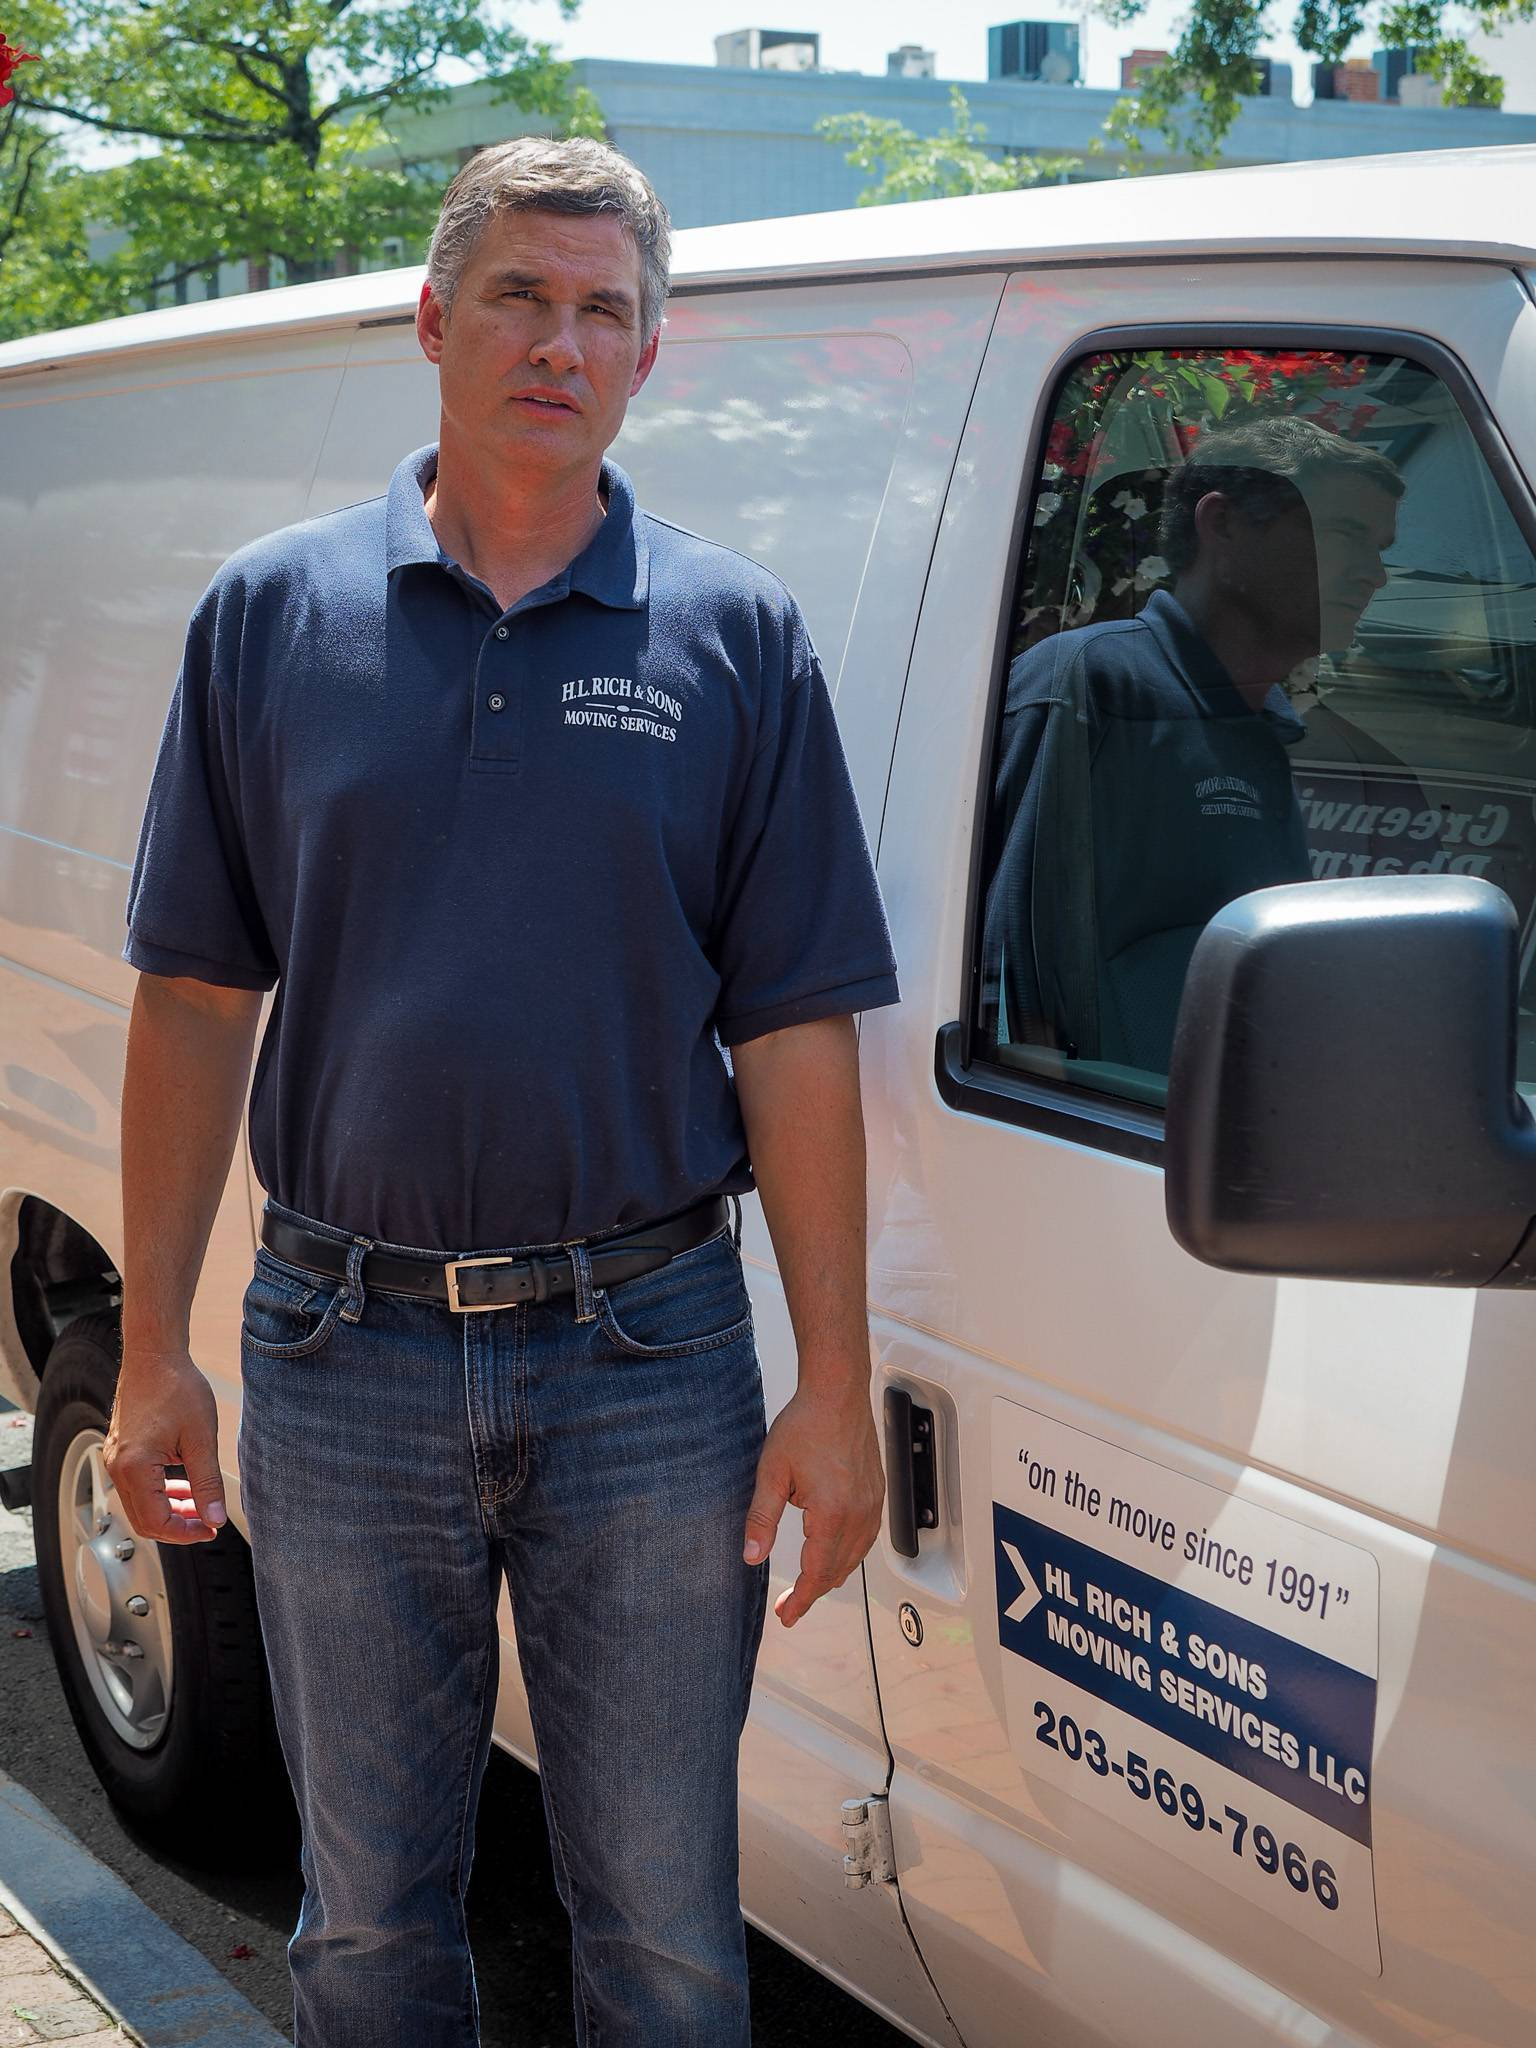 Antique Moving Services Greenwich, CT